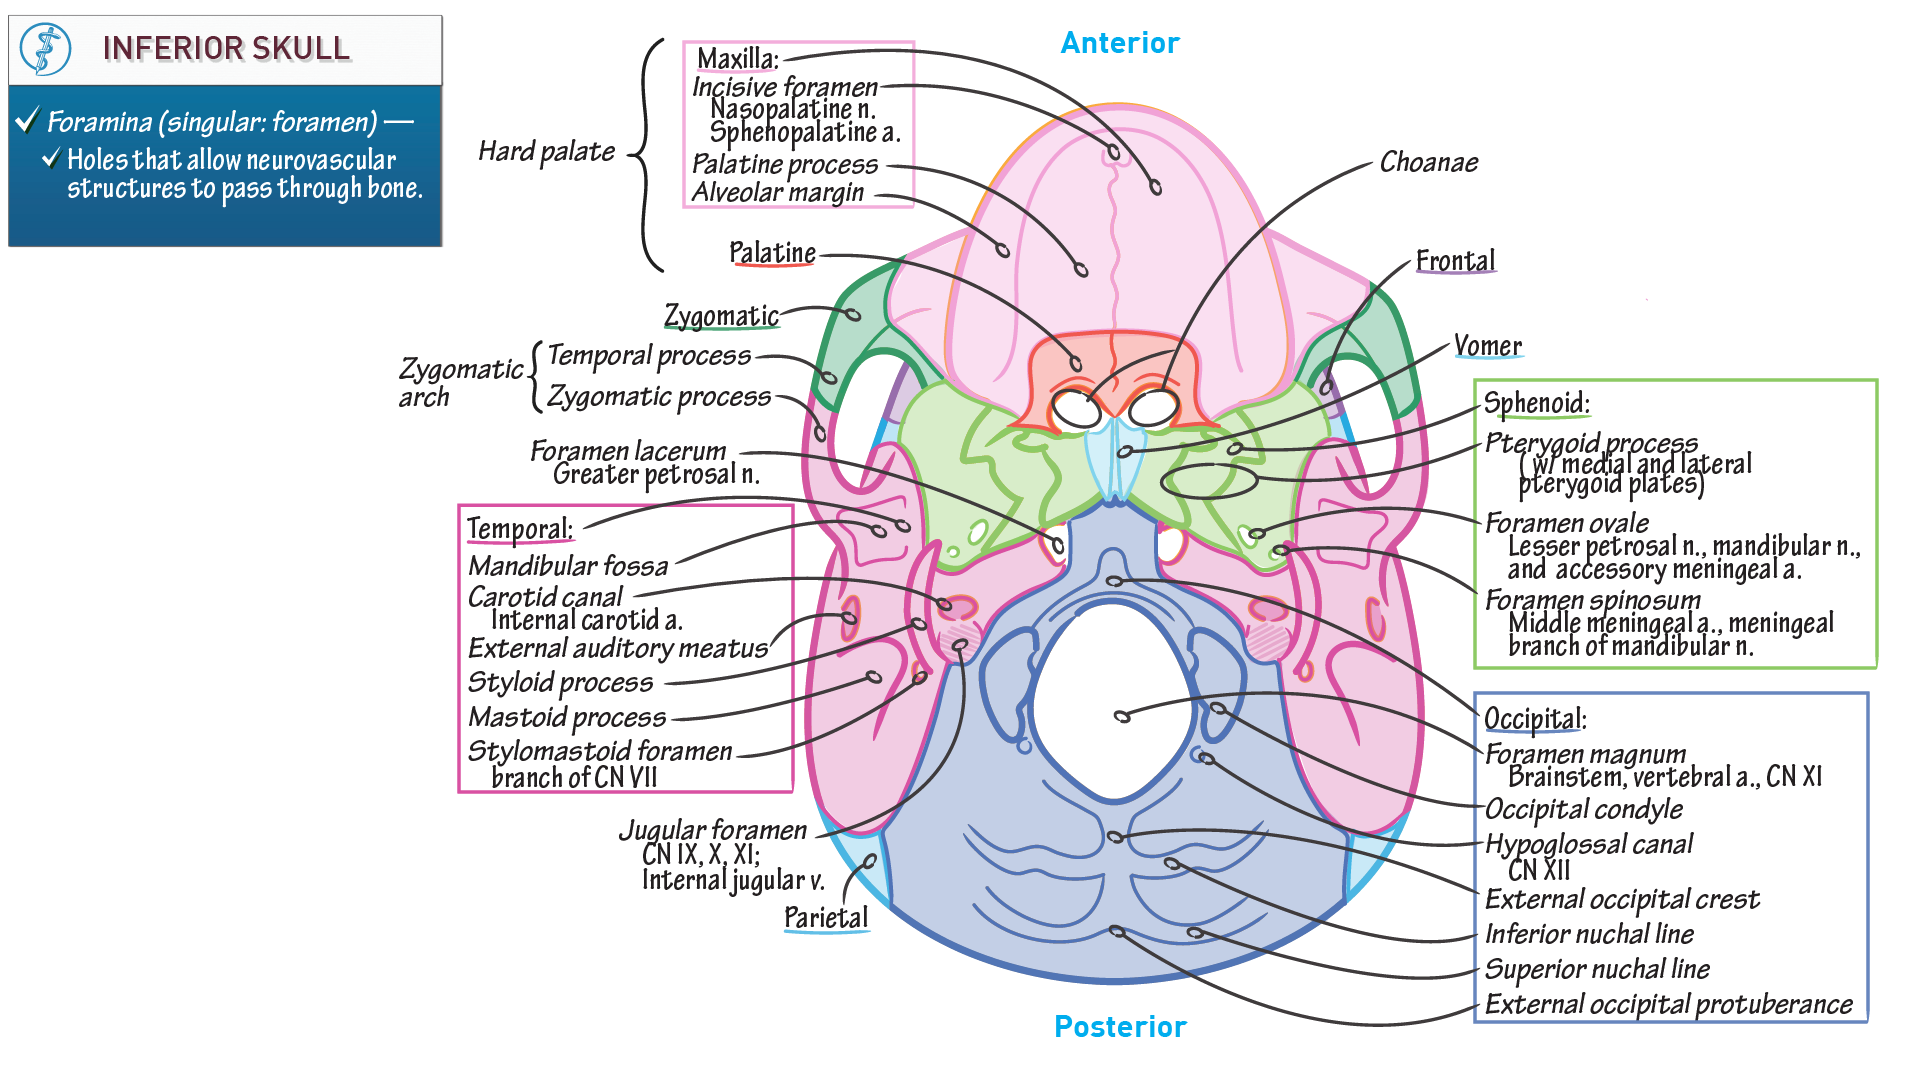 Gross Anatomy: Inferior Skull | Draw It to Know It